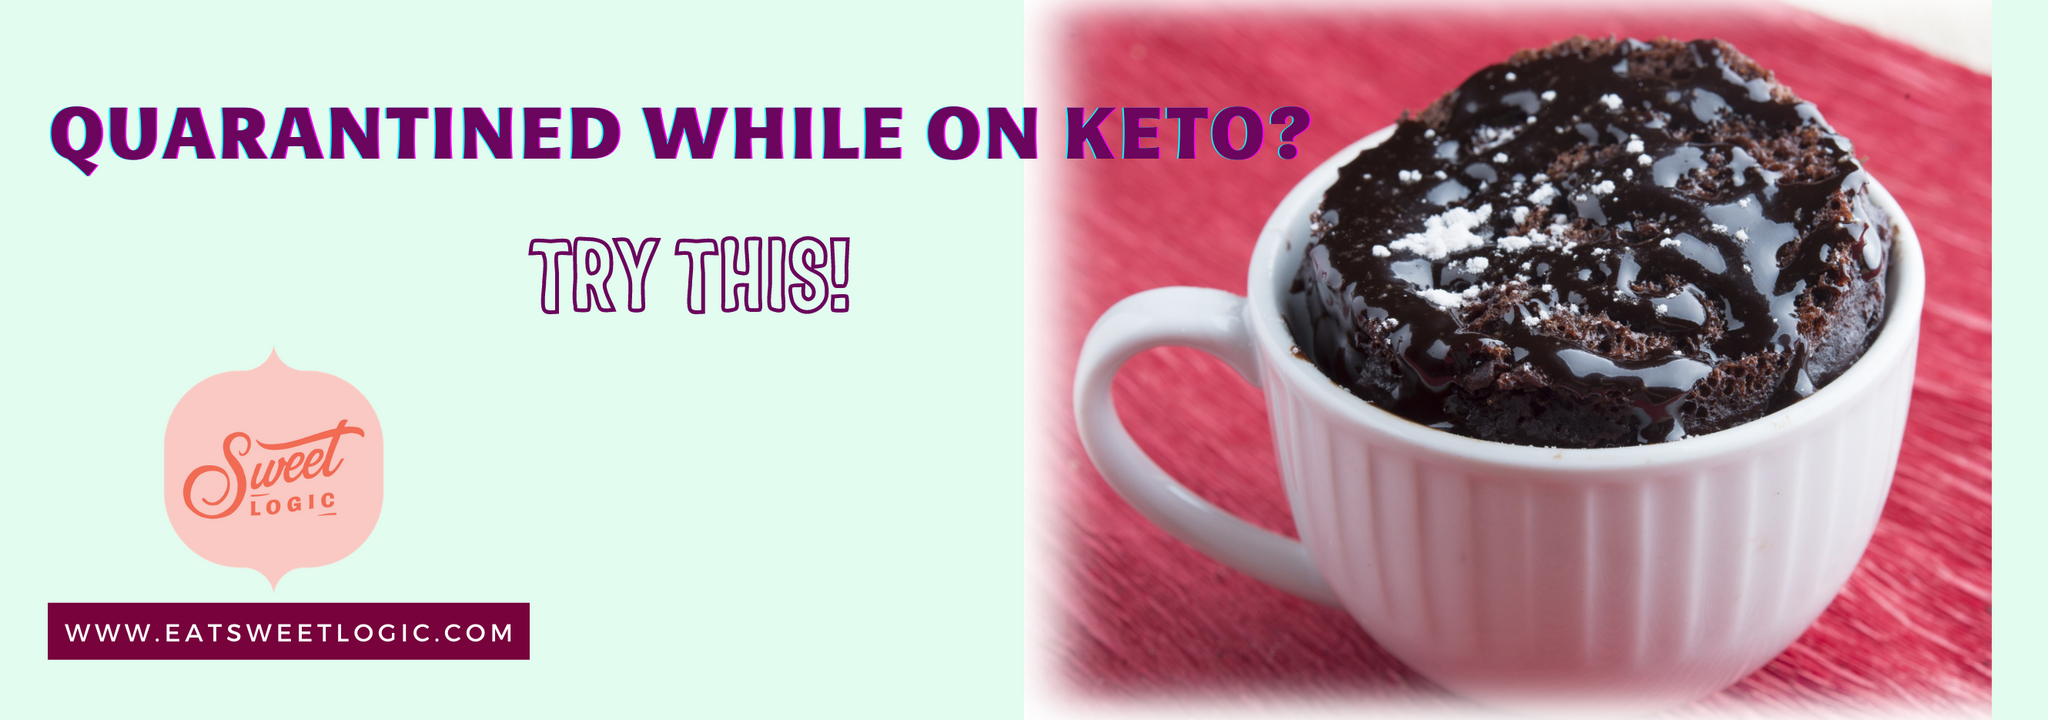 Quarantined While On Keto? Try This!